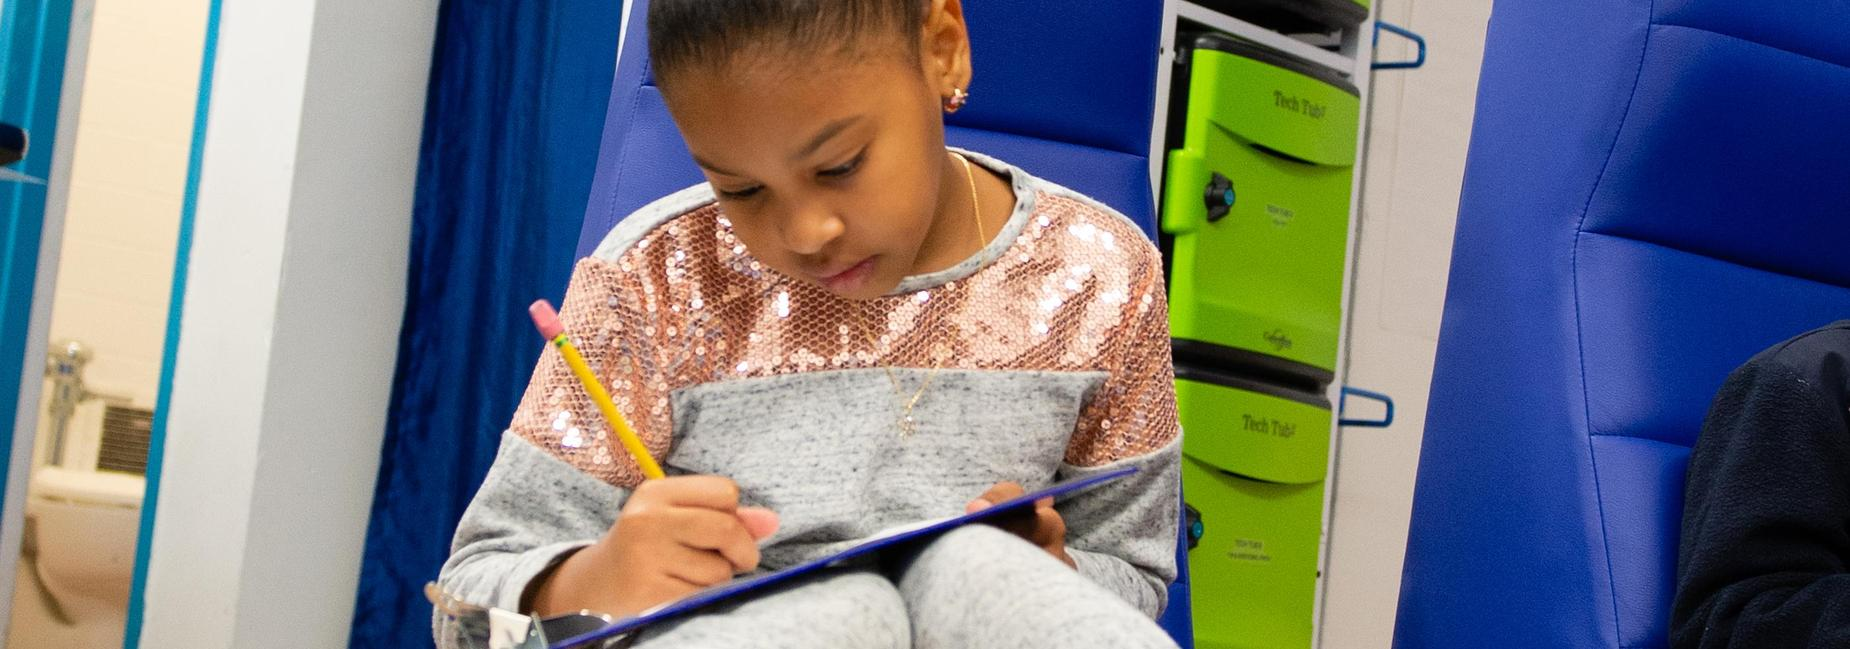 A seated elementary school student writing on a paper on her lap.